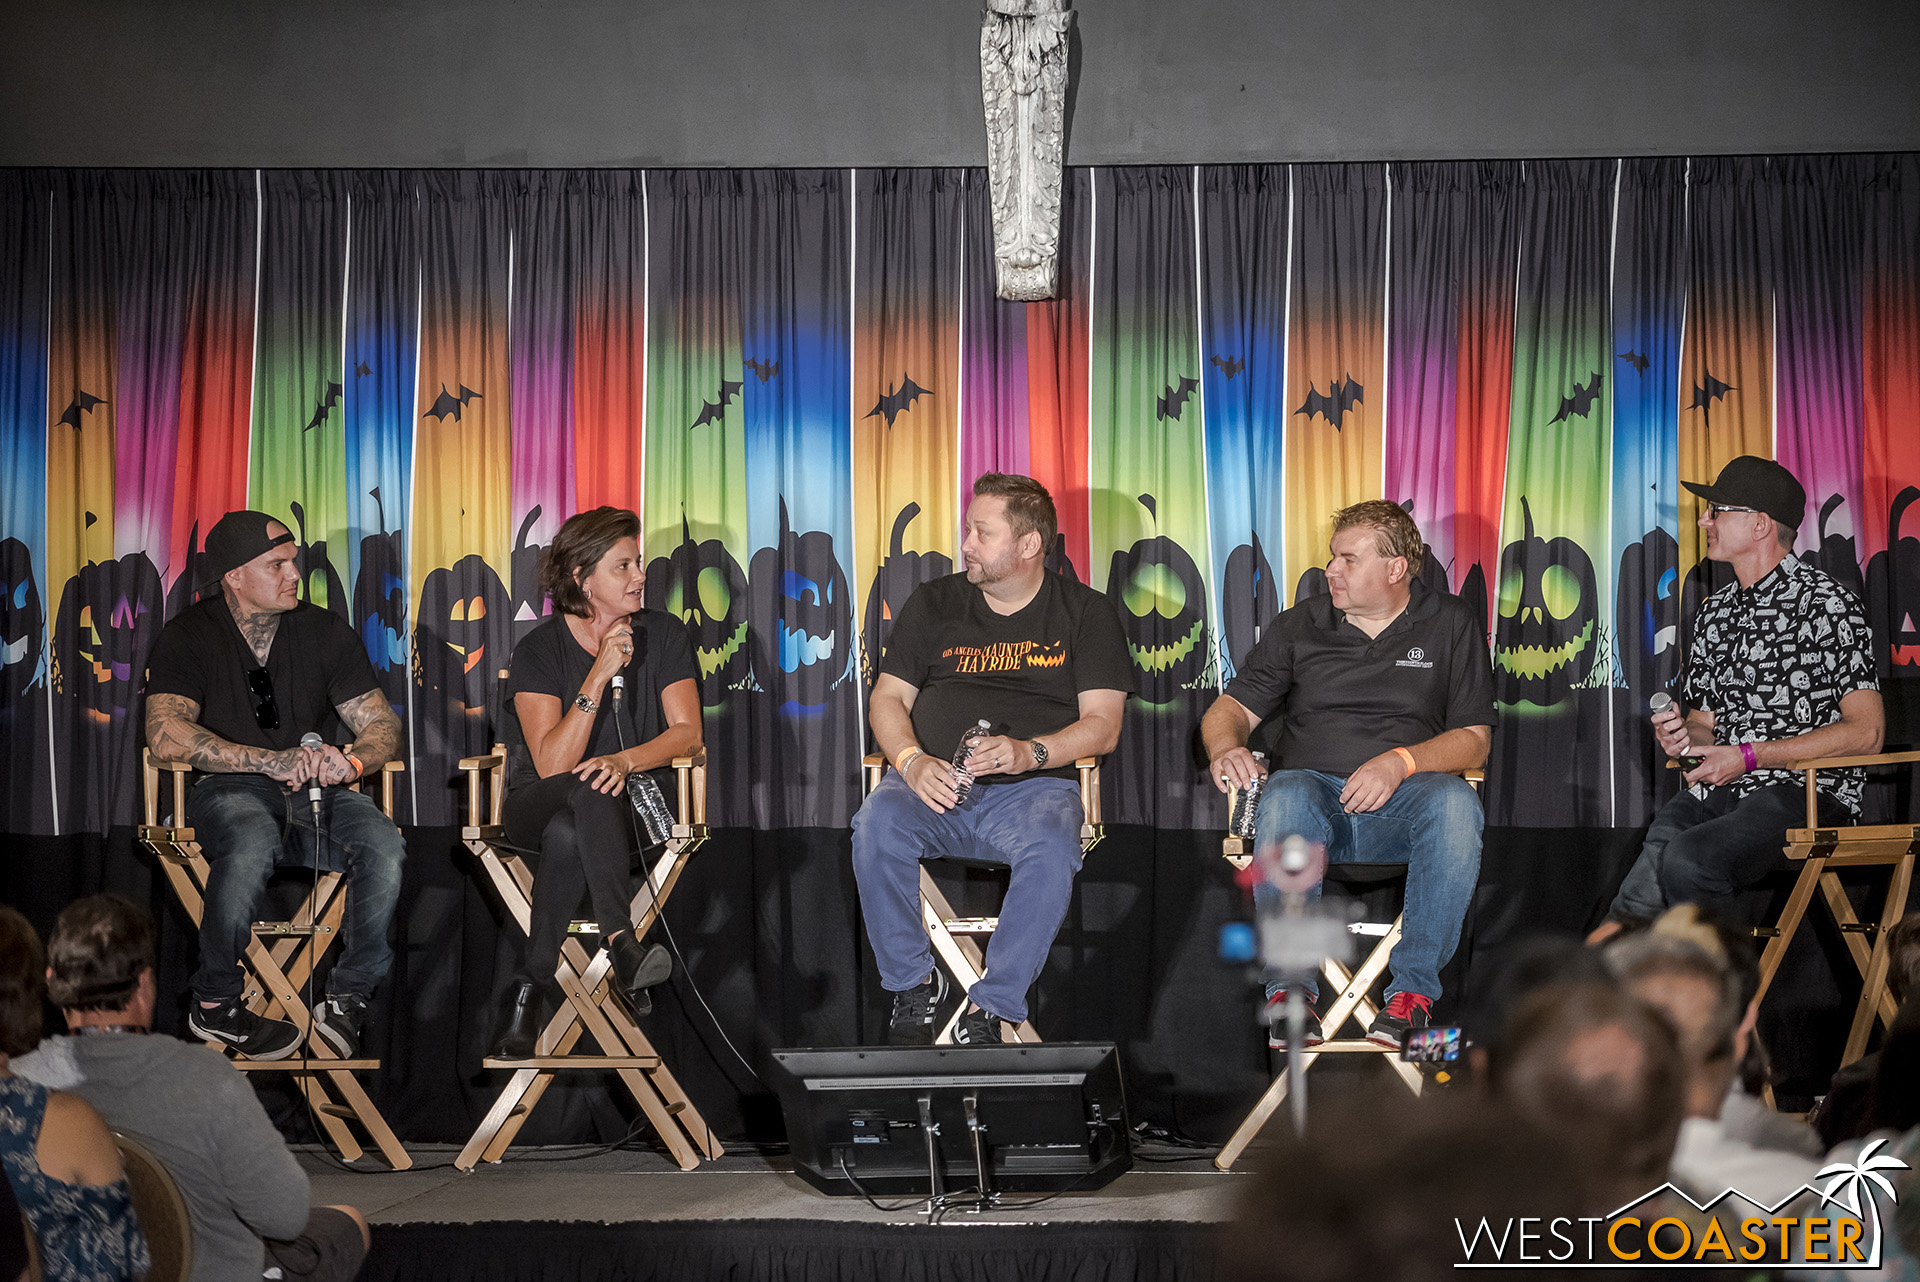 Left to right, Creative Director, Jon Cooke; L.A. Haunted Hayride Creator, Melissa Carbonne; Thirteenth Floor Entertainment CEO, Chris Stafford; Thirteenth Floor Entertainment Director of Operations, Warren Conard; and Writer/Director, Ted Dougherty.